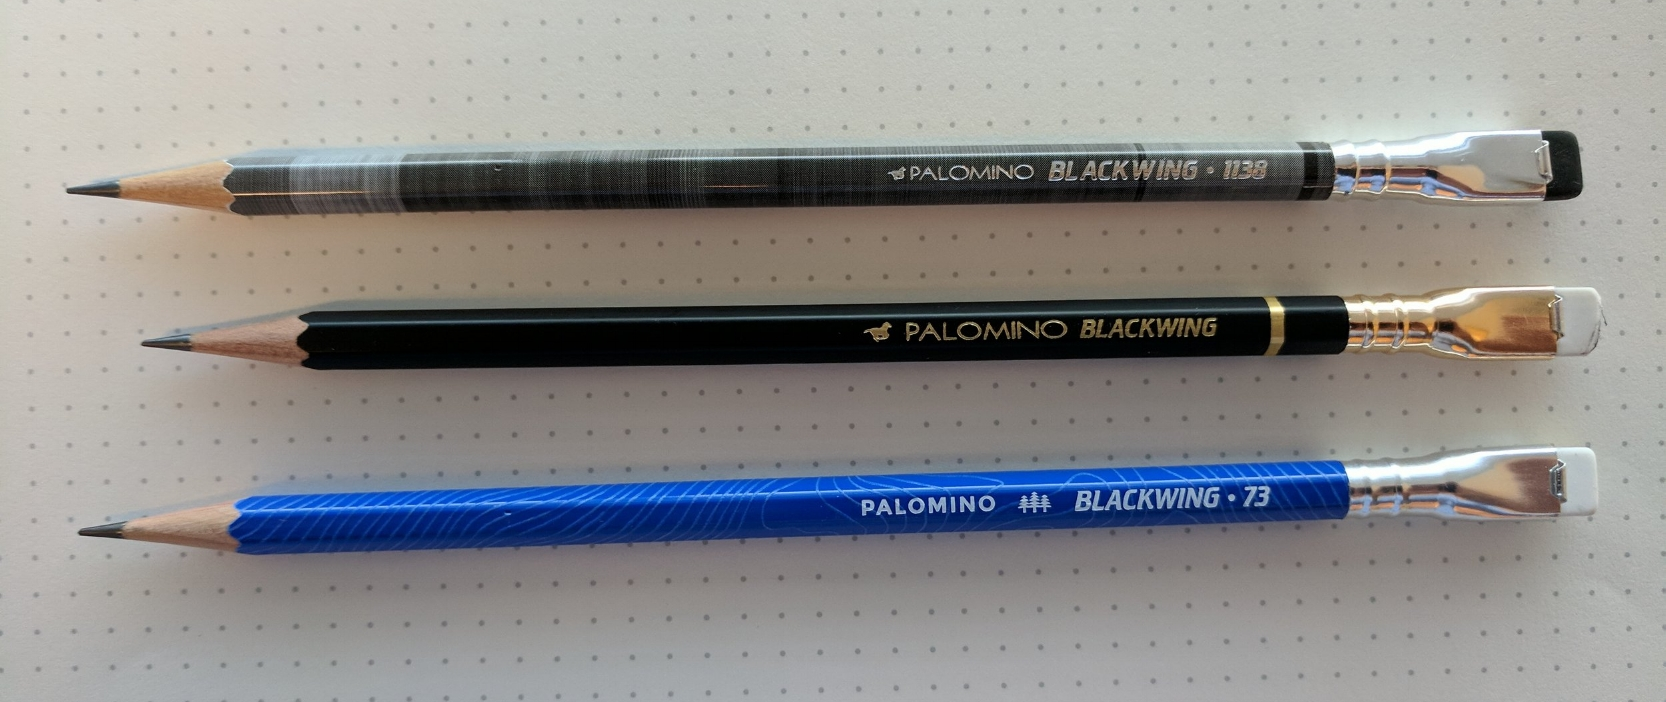 Blackwing original (center) with the  Blackwing Volume 1138  (top) and  Volume 73  (bottom).